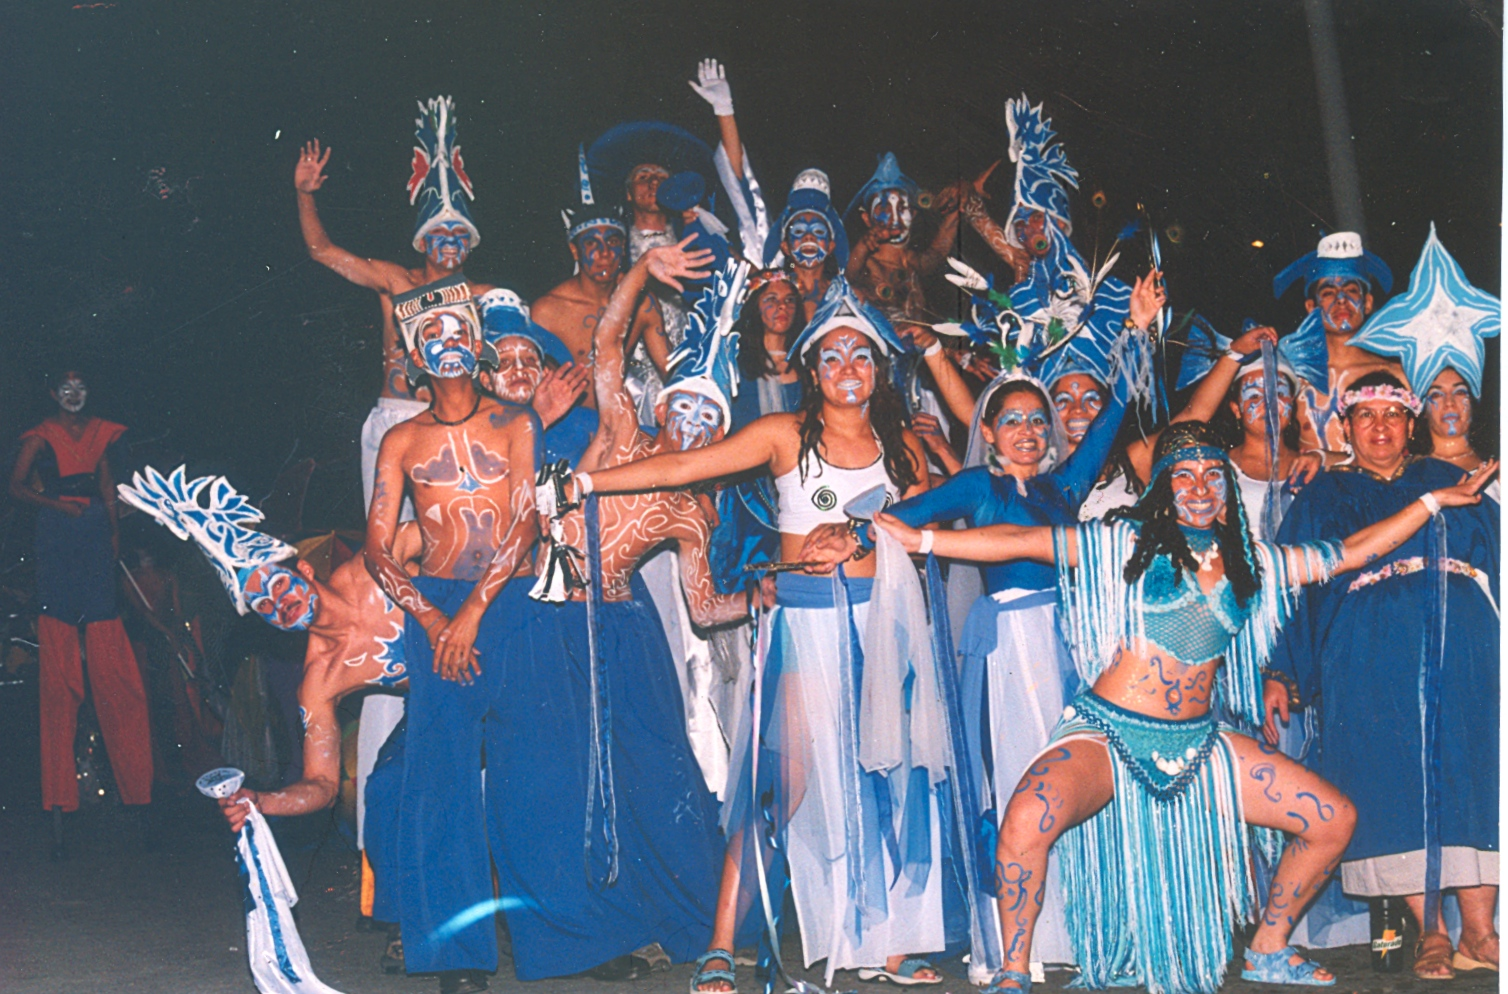 Historia Caja Ldica They Peaked On The Talent Show Circuit In 1992 With A Performance 2